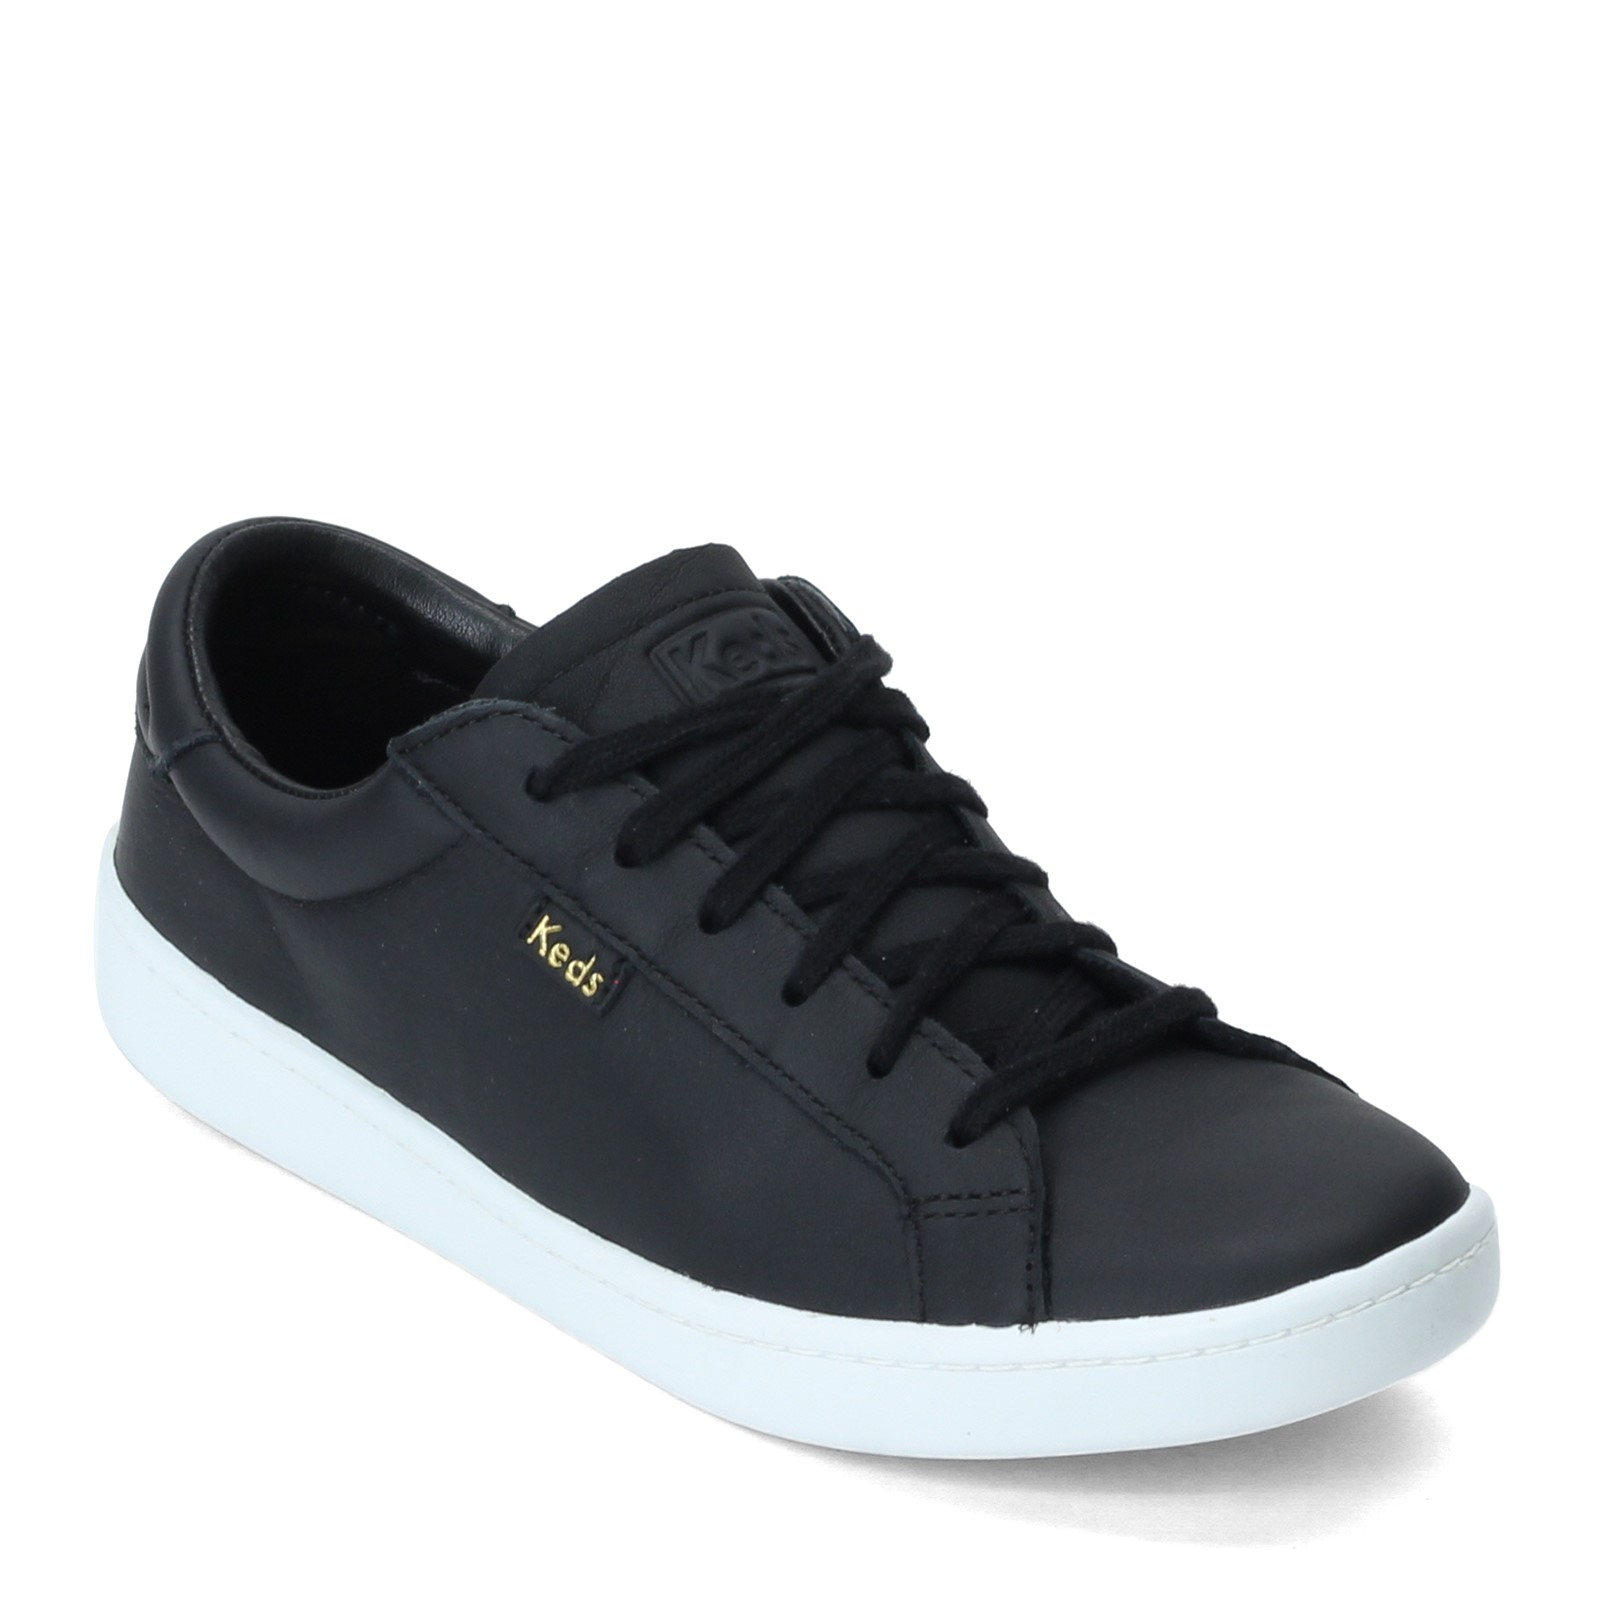 Women's Keds, Ace Sneakers